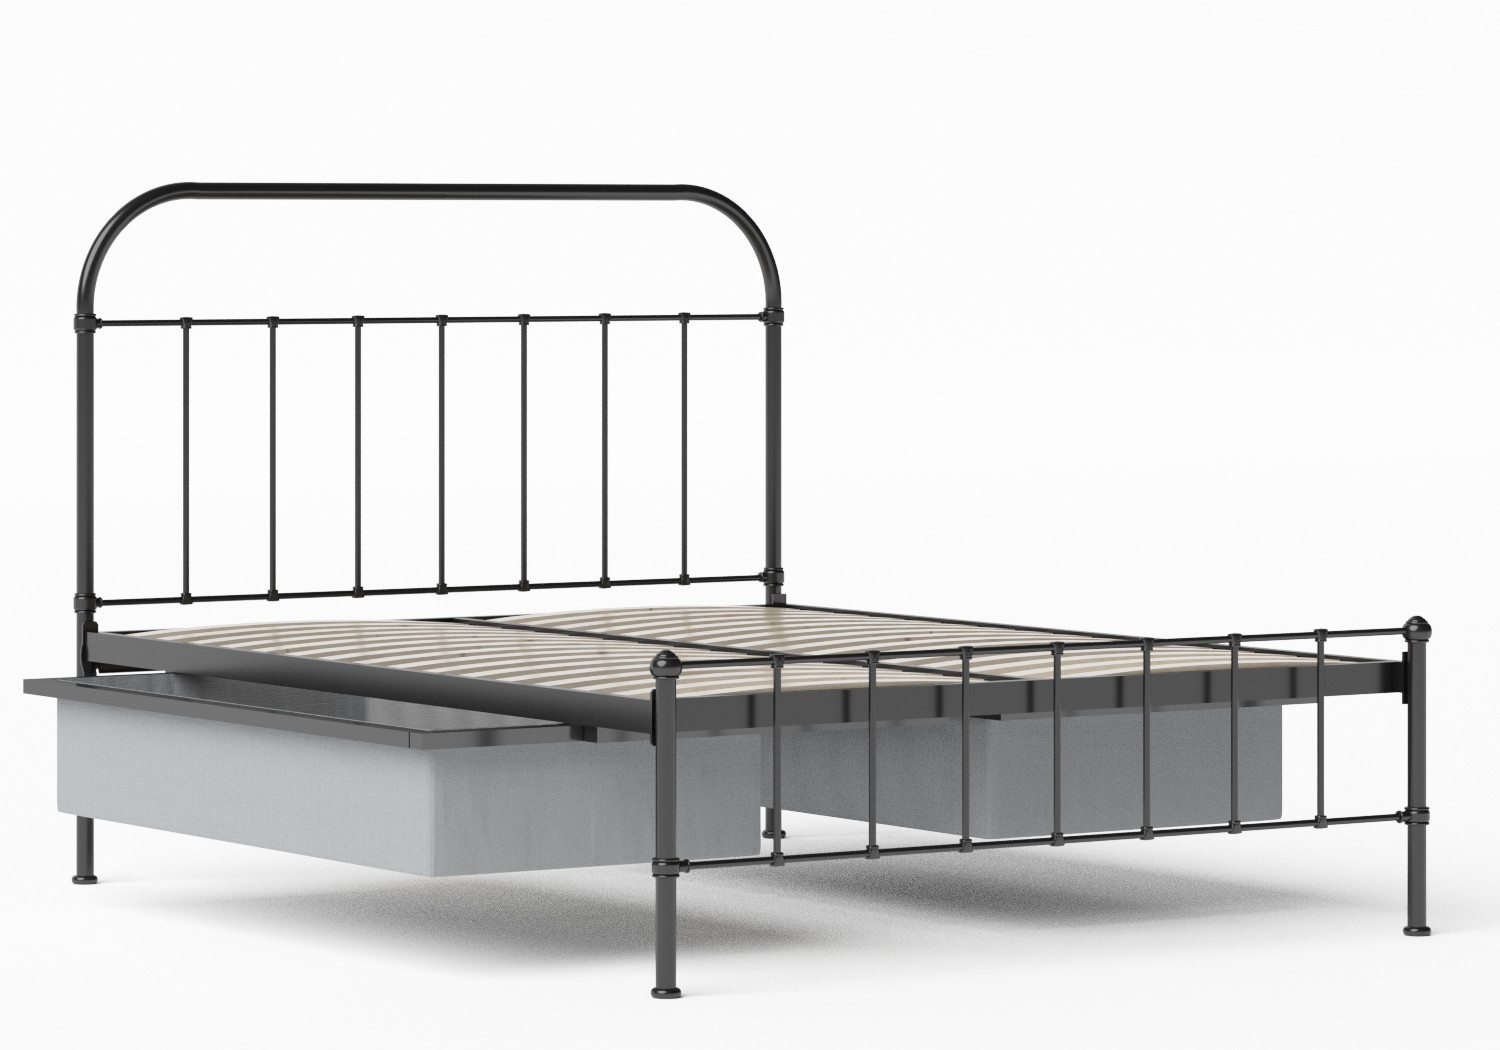 Solomon Iron/Metal Bed in Satin Black shown with underbed storage